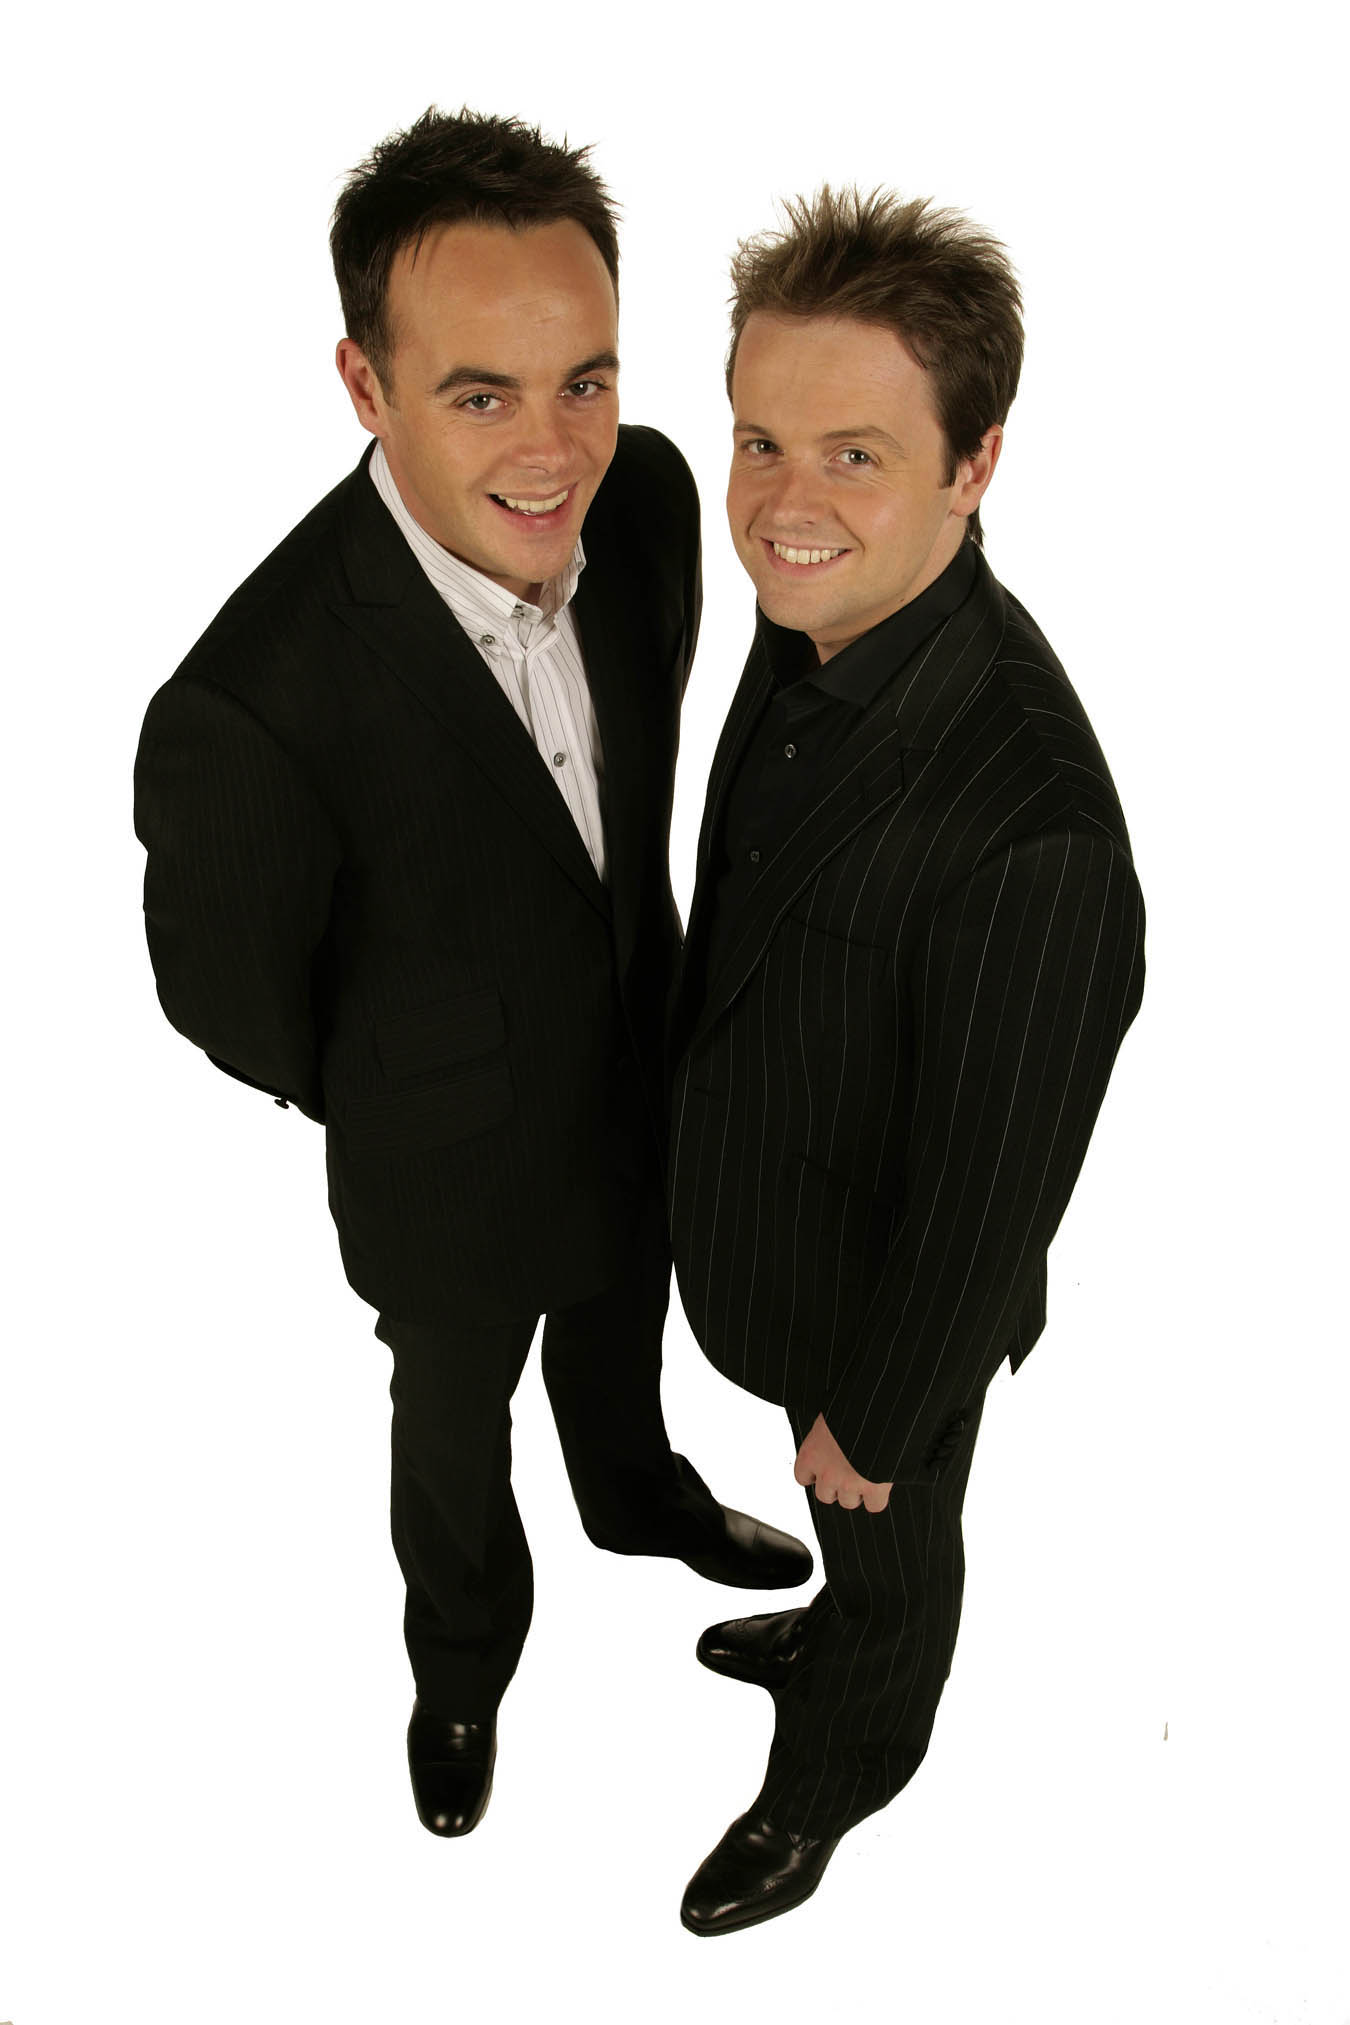 Ant and Dec become GMTV weathermen